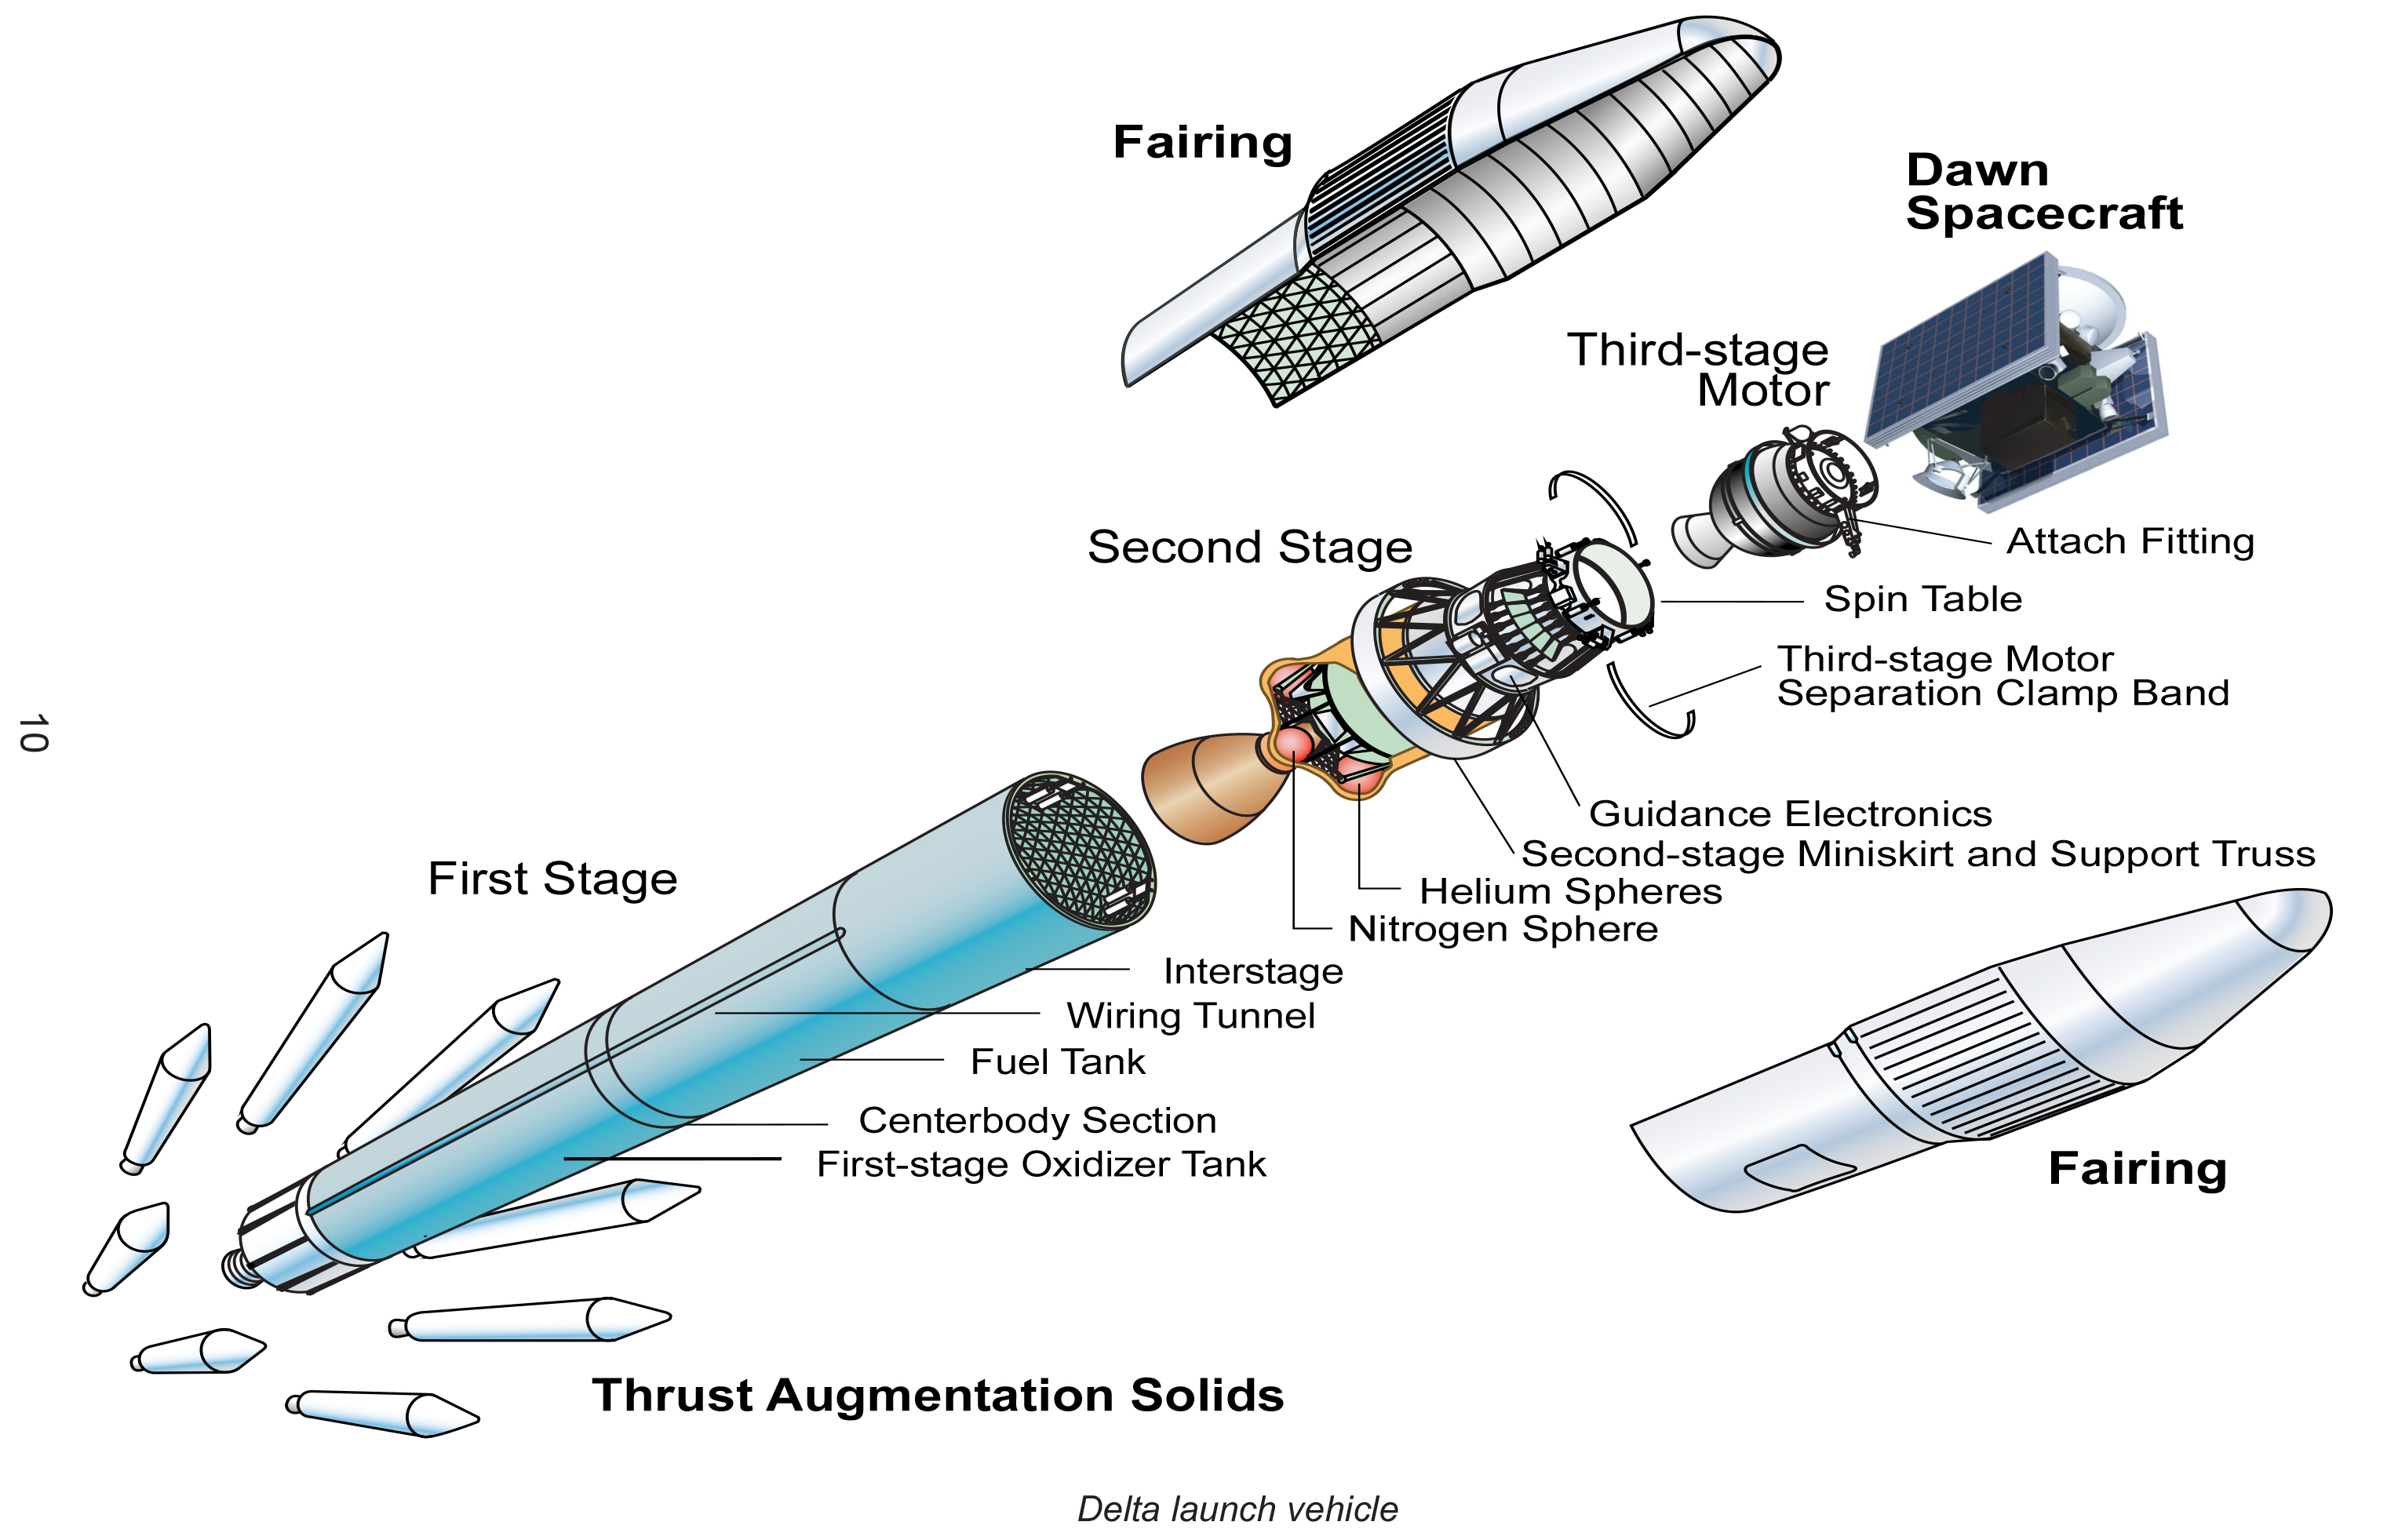 Dawn Launch Vehicle Diagram | NASA Solar System Exploration on water heater ladder diagram, heat pump water heater diagram, titan water heater diagram, water heater breaker box, water heater interior diagram, water heater frame, water heater system diagram, water heater repair, water heater controls diagram, water heater transformer, water heater exhaust diagram, water heater electrical schematic, water heater vent diagram, water heater installation, water heater thermostat diagram, water heater cutaway view, water heater fuse replacement, water heater exploded view, water heater radiator diagram, water heater lighting,